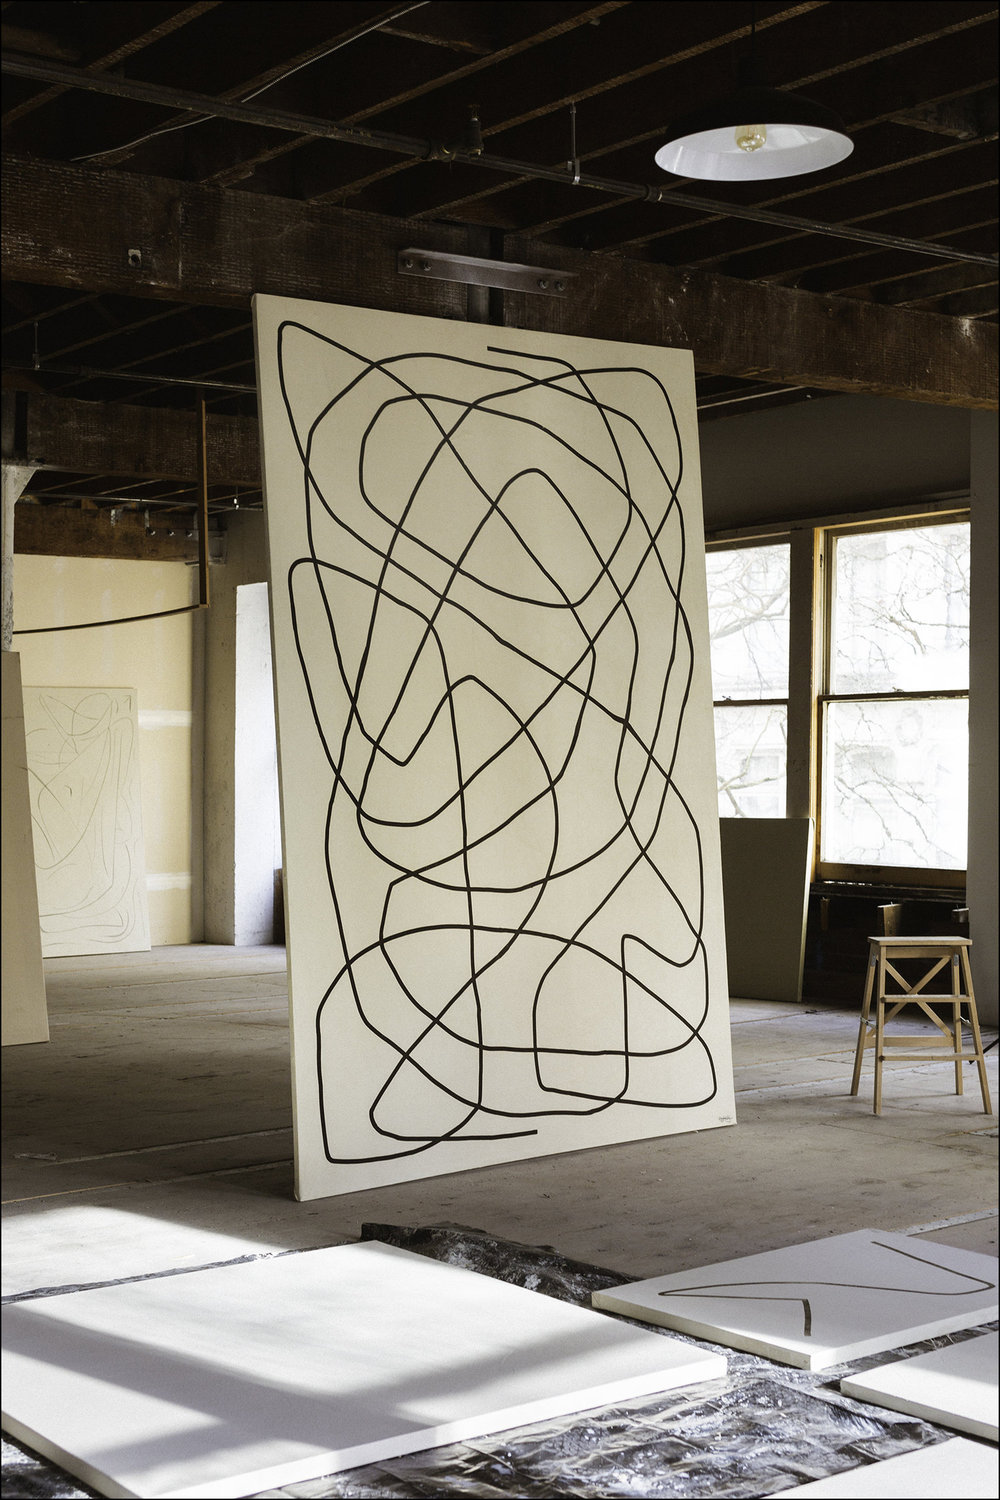 Common  - 2018 -Ink on Paint on Canvas - 114 x 75 Inches (289.5 x 190.5cm) —Inquire for Pricing